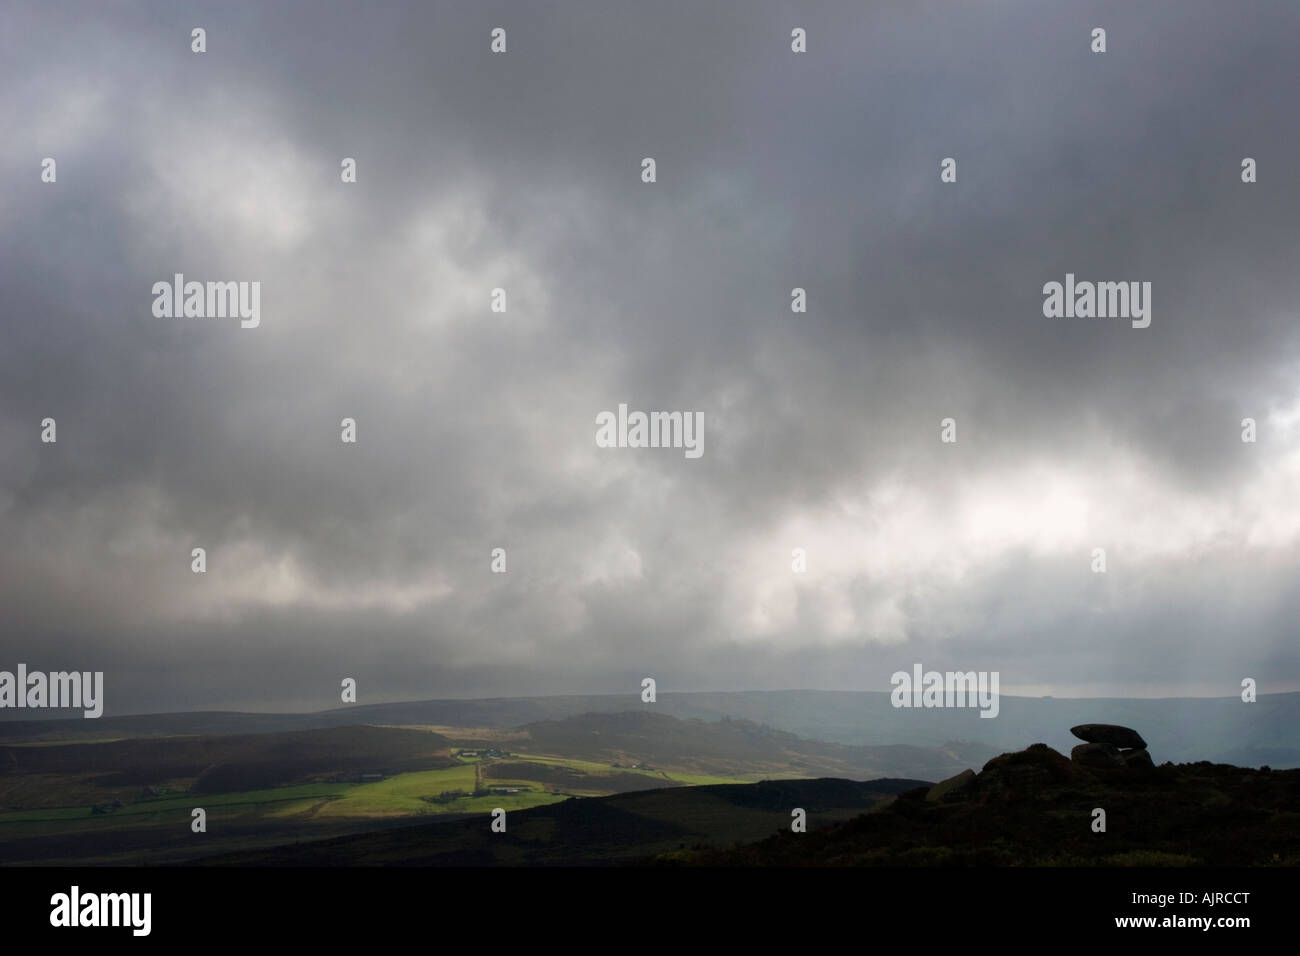 Dark clouds over the Roaches near Leek in the Stafordshire Moorlands - Stock Image